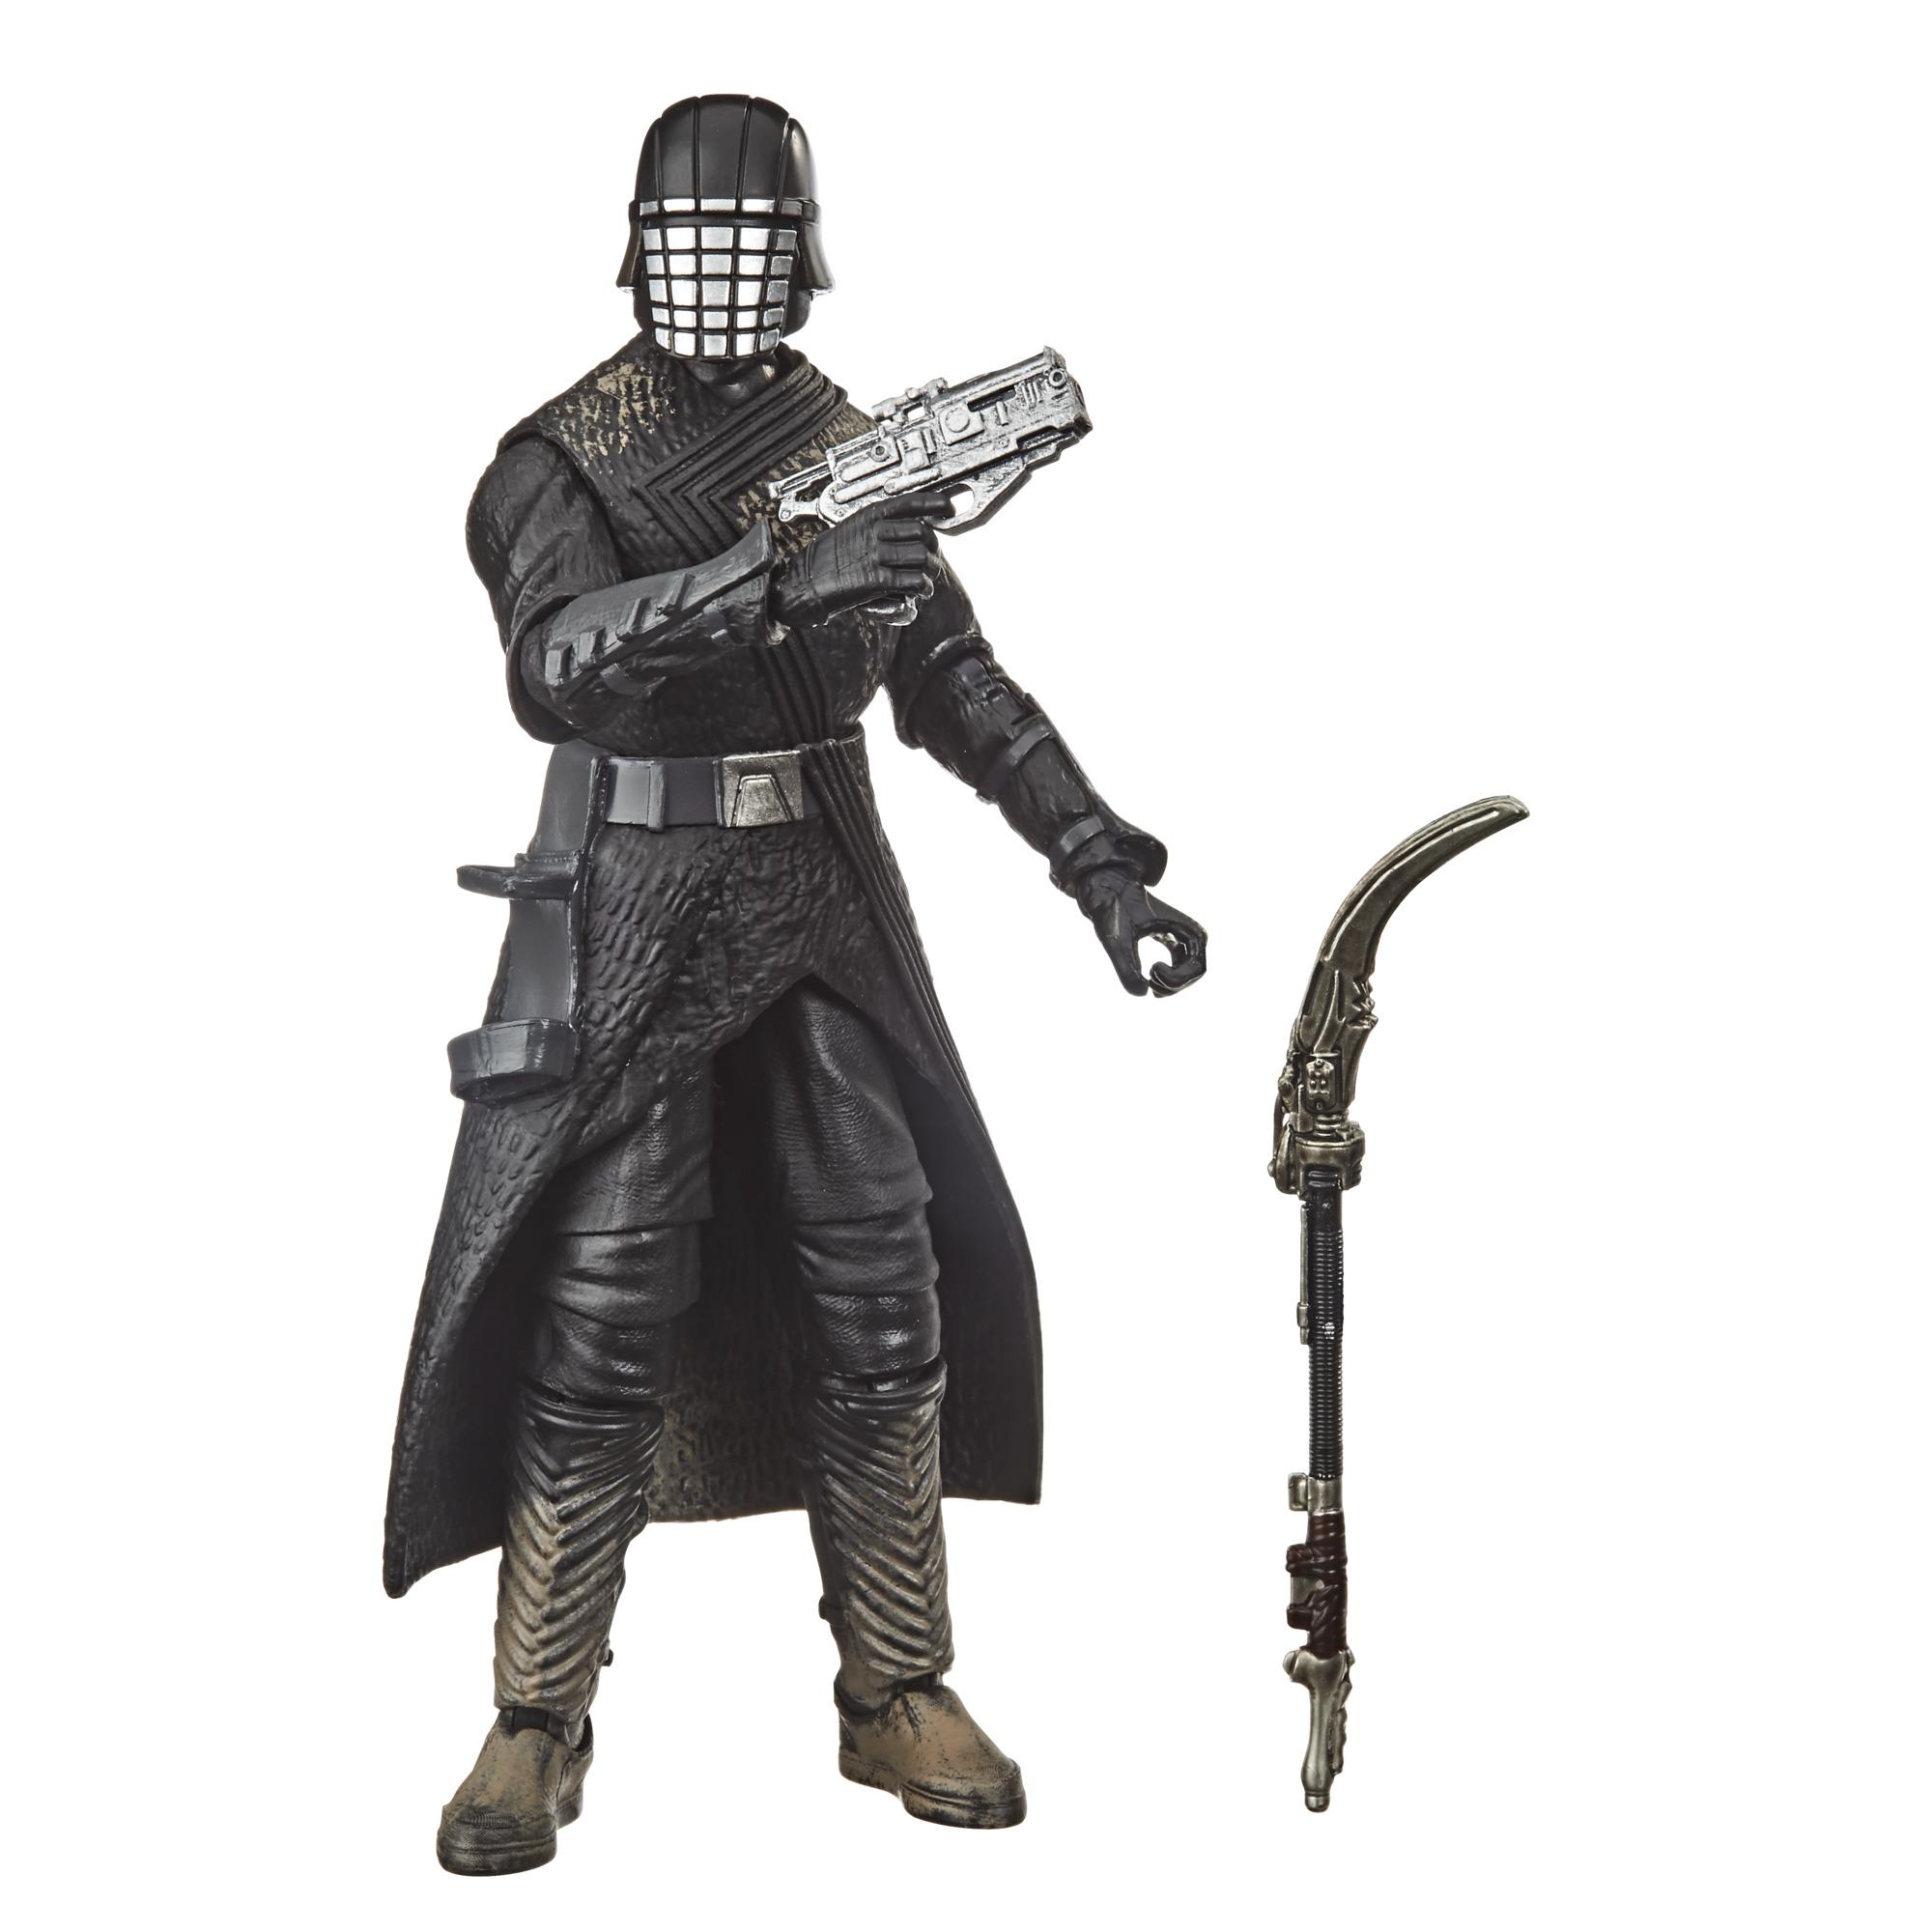 Star Wars The Black Series Knight of Ren Toy 6-inch Scale Star Wars: The Rise of Skywalker Collectible Figure